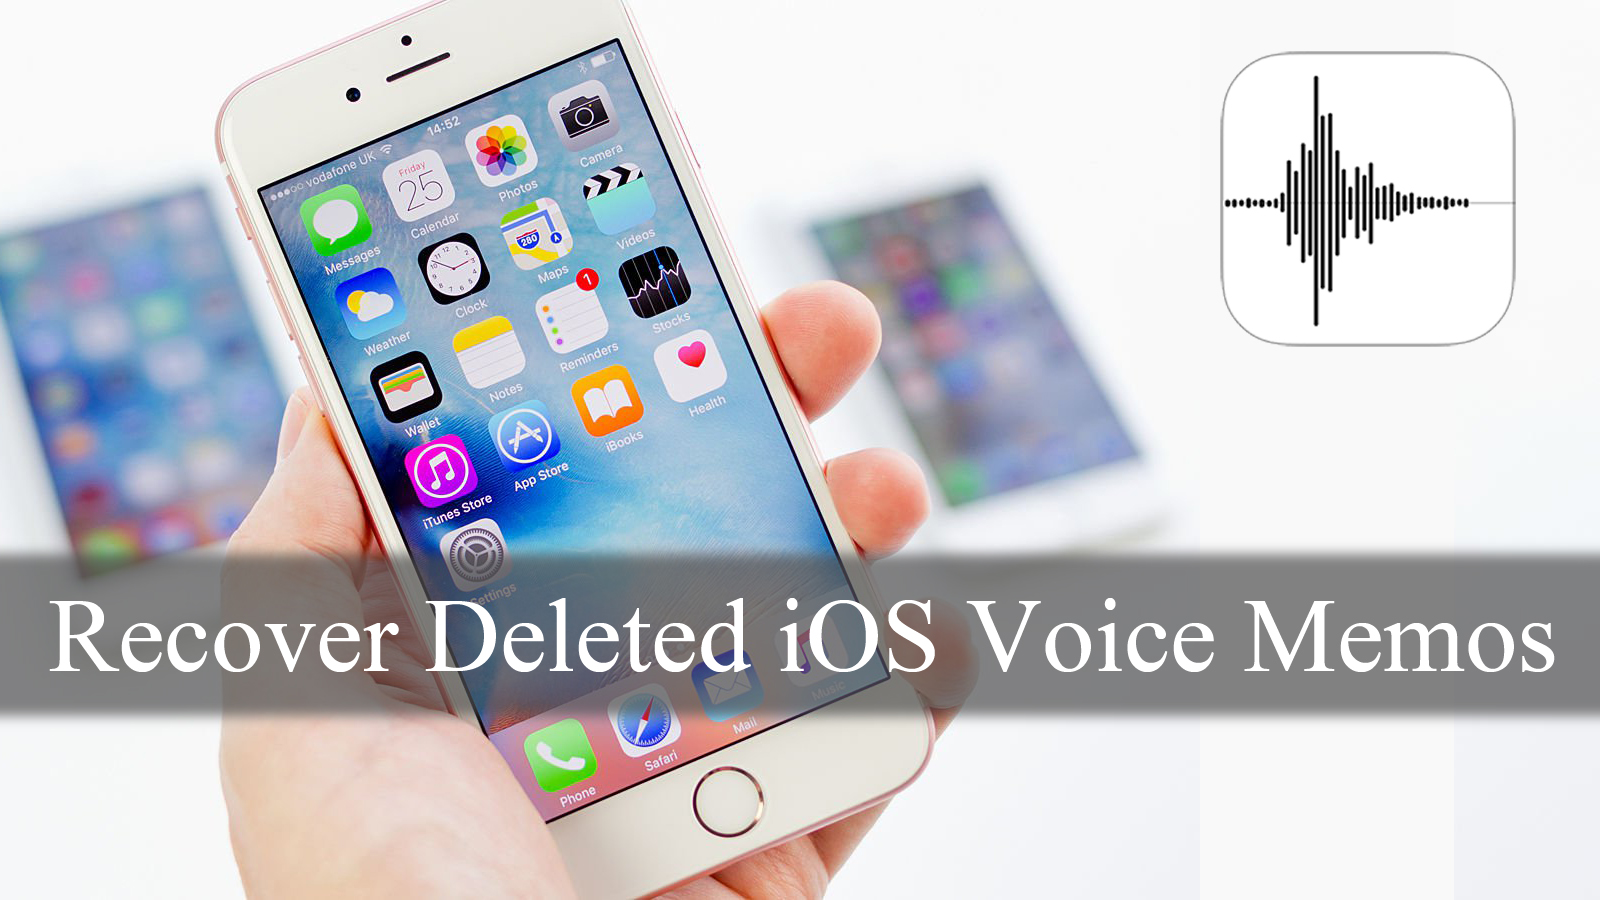 How To Recover Deleted Voice Memos On Iphone